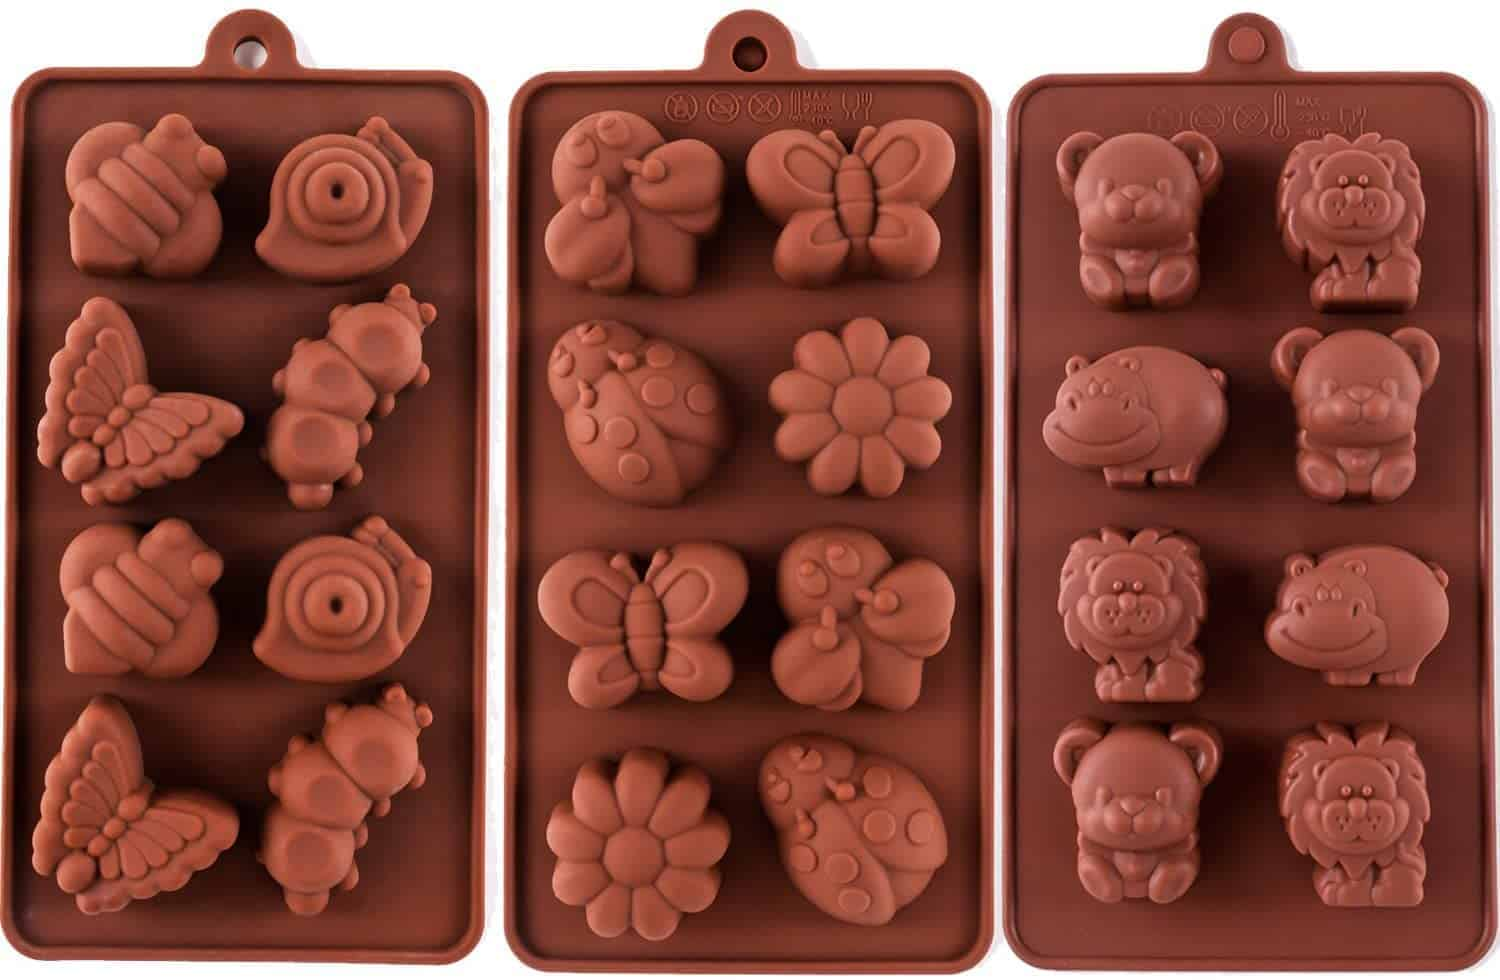 insects and animals silicone mold